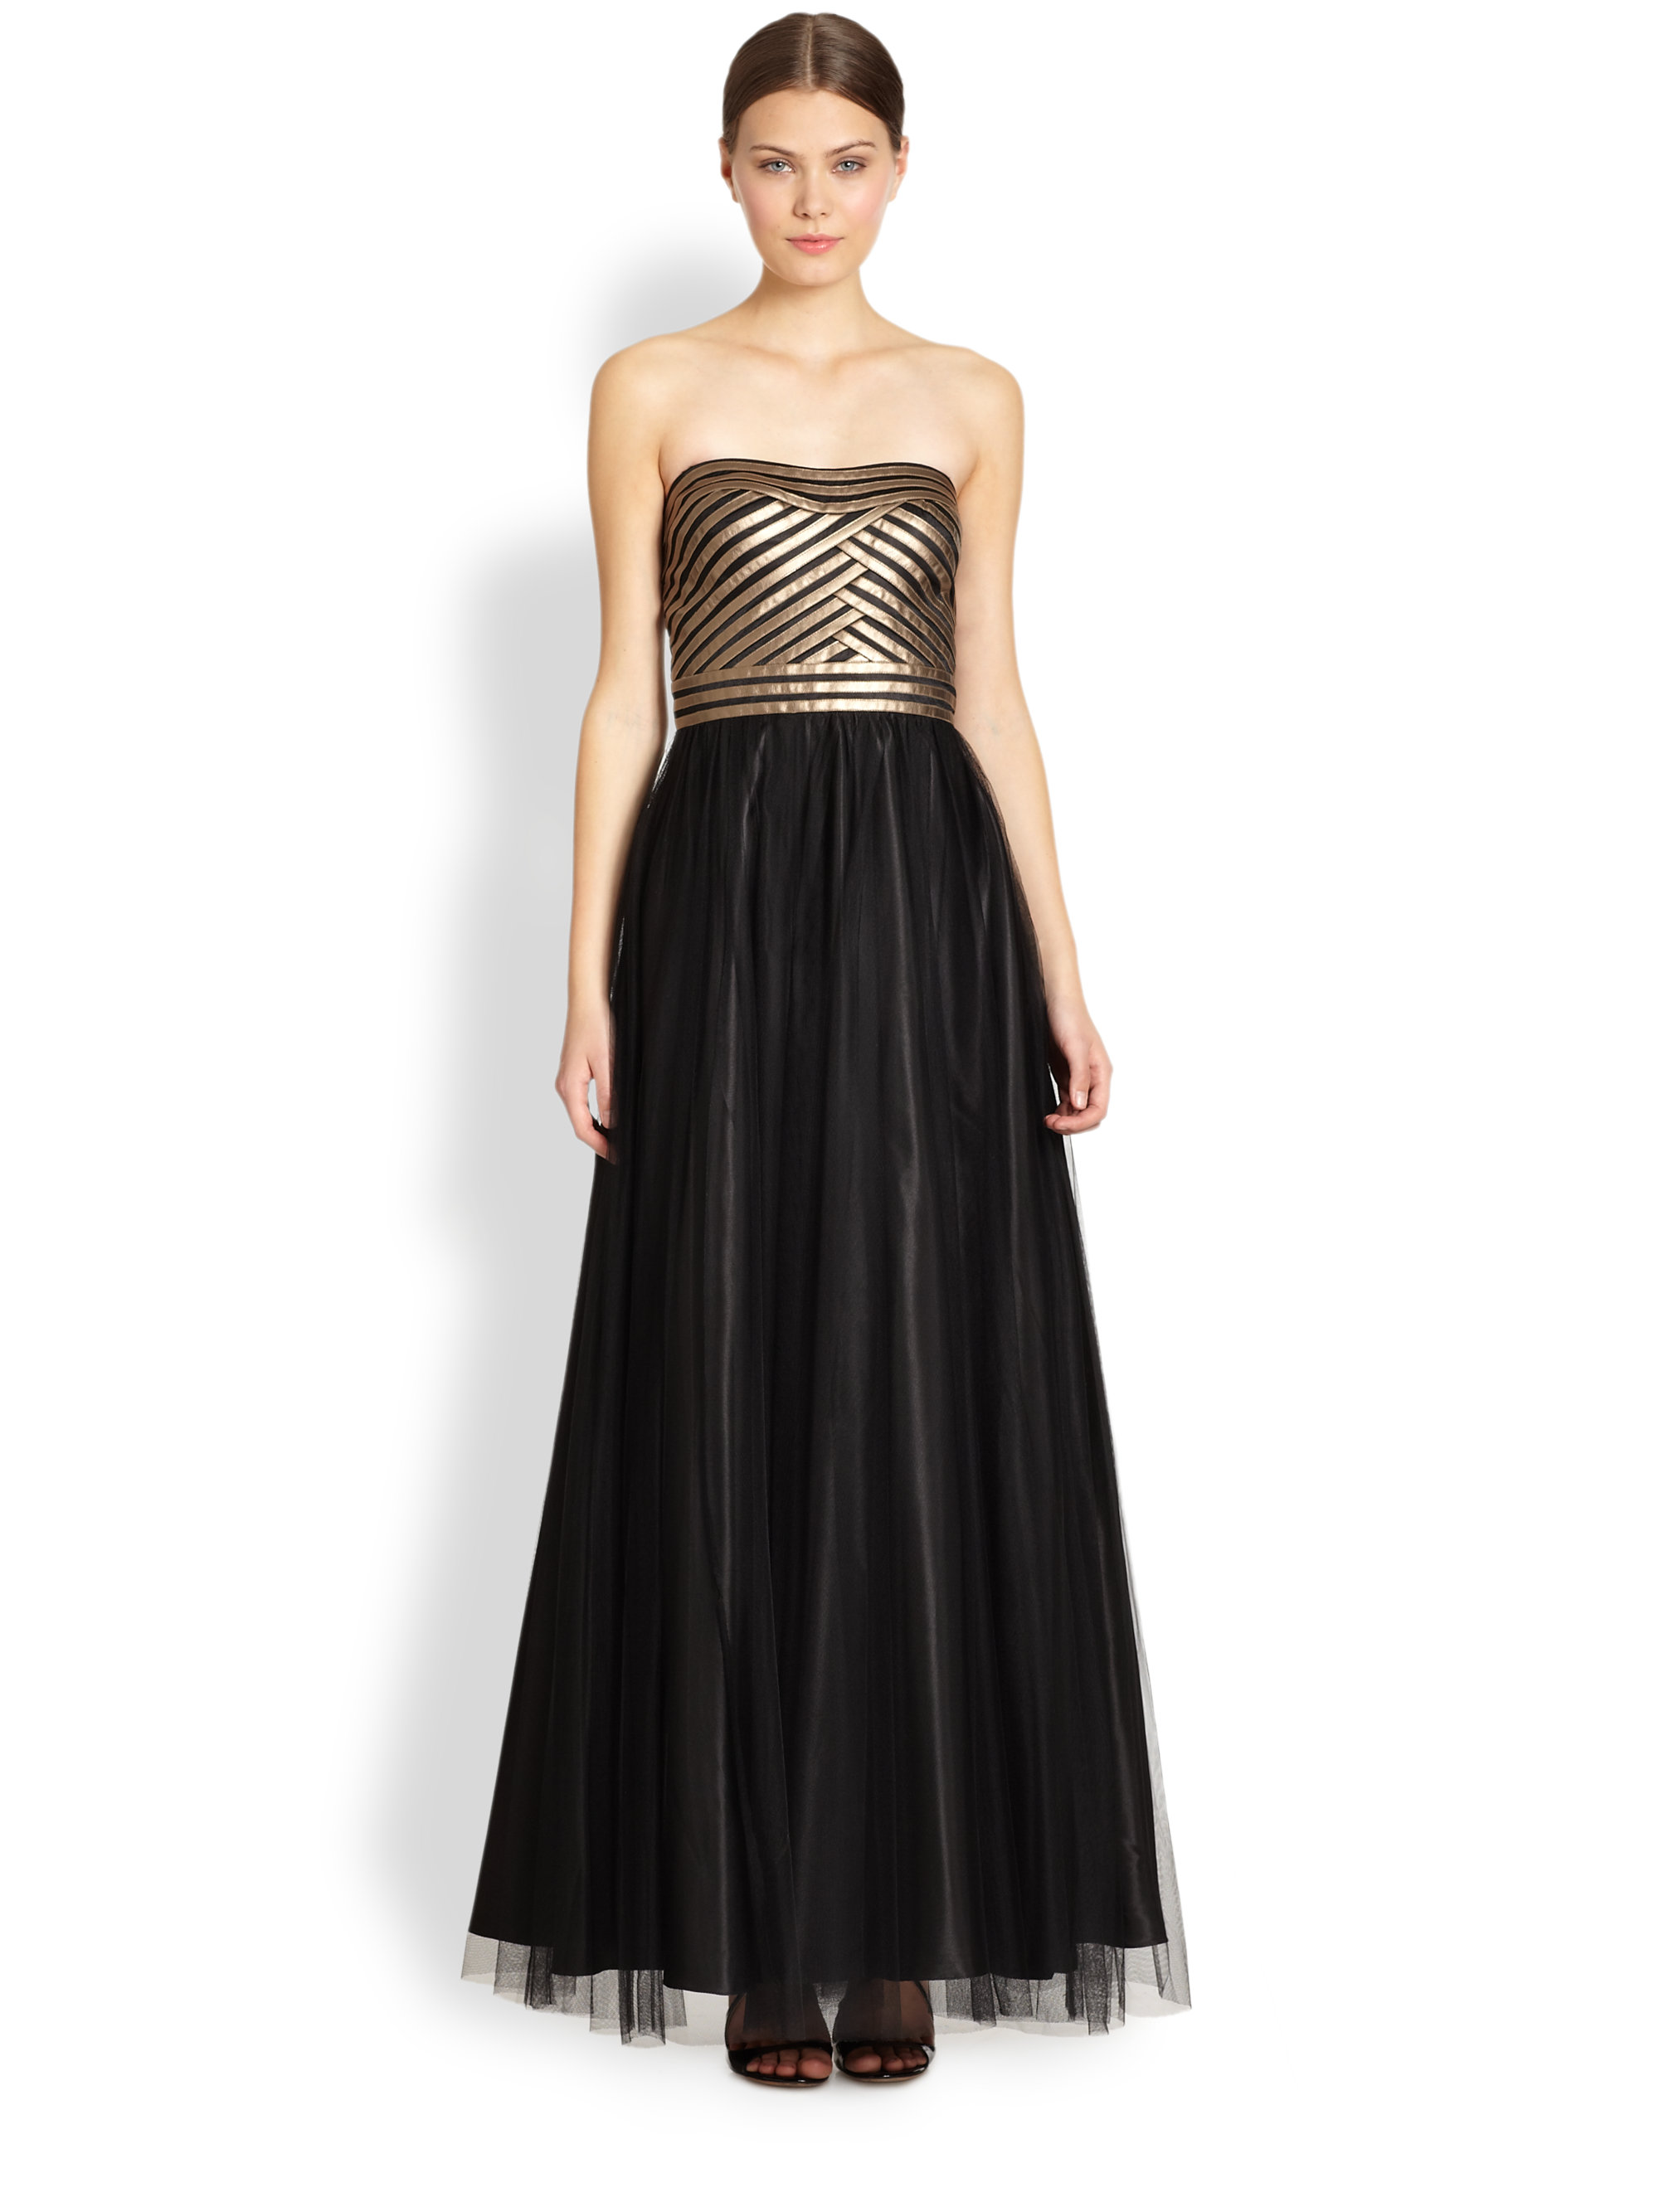 Lyst - Aidan Mattox Tulle Faux Leather Strapless Gown in Black